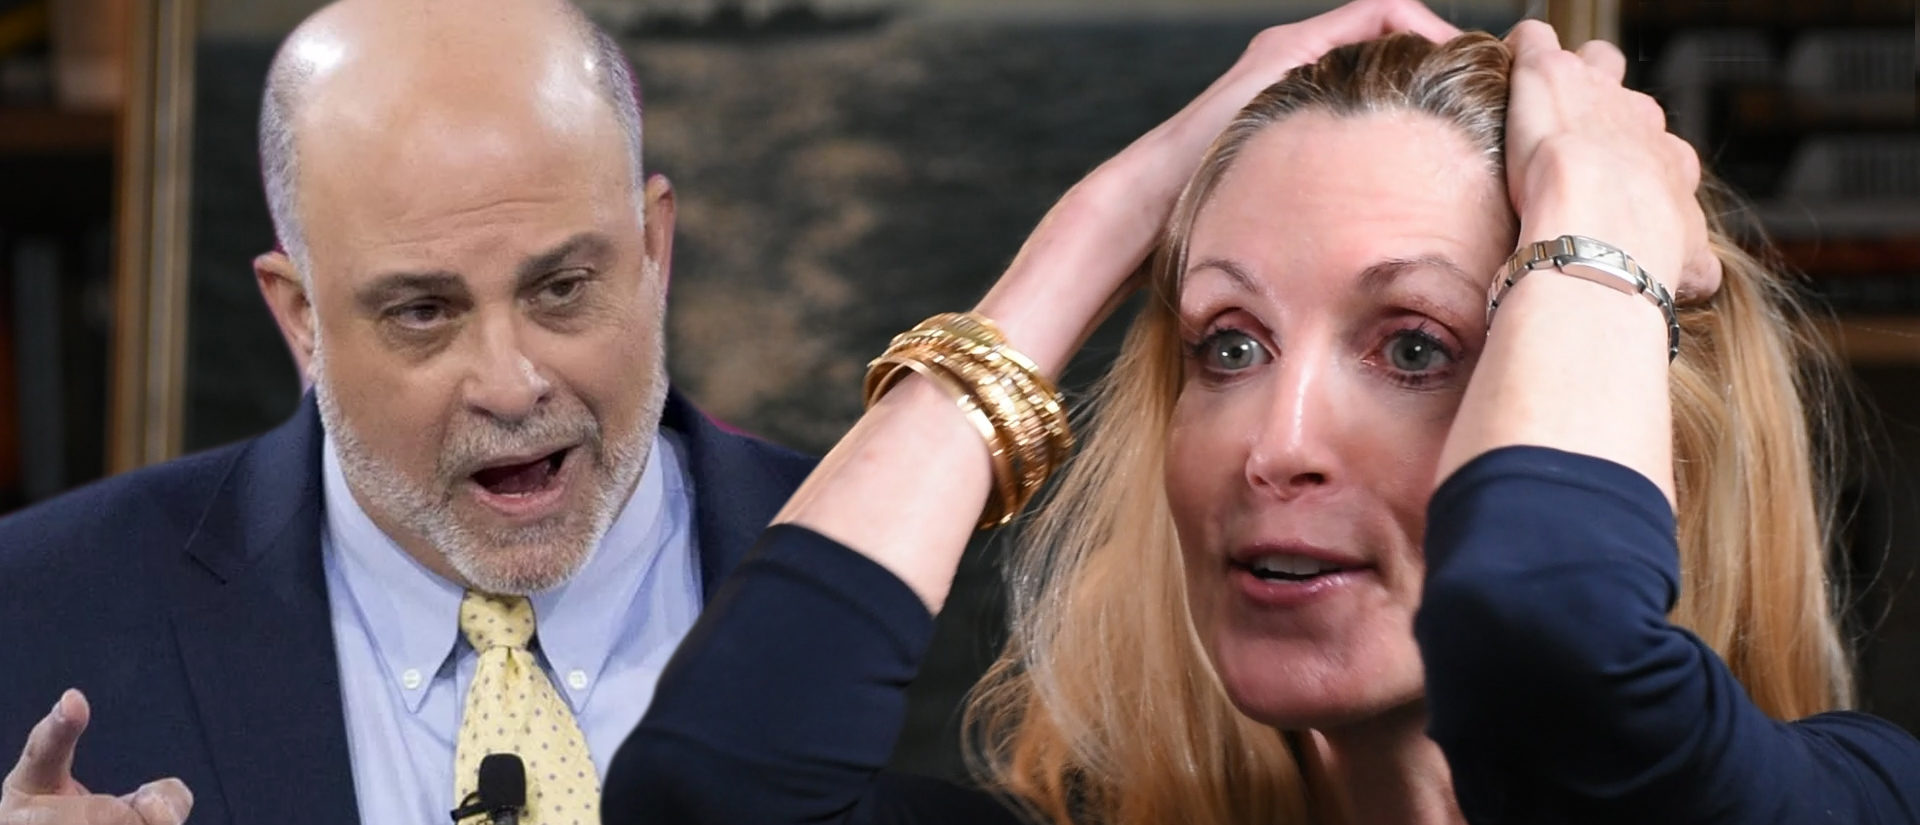 Exclusive: Ann Coulter Hits Back At Mark Levin's 'Pseudo-Conservatives' Insult